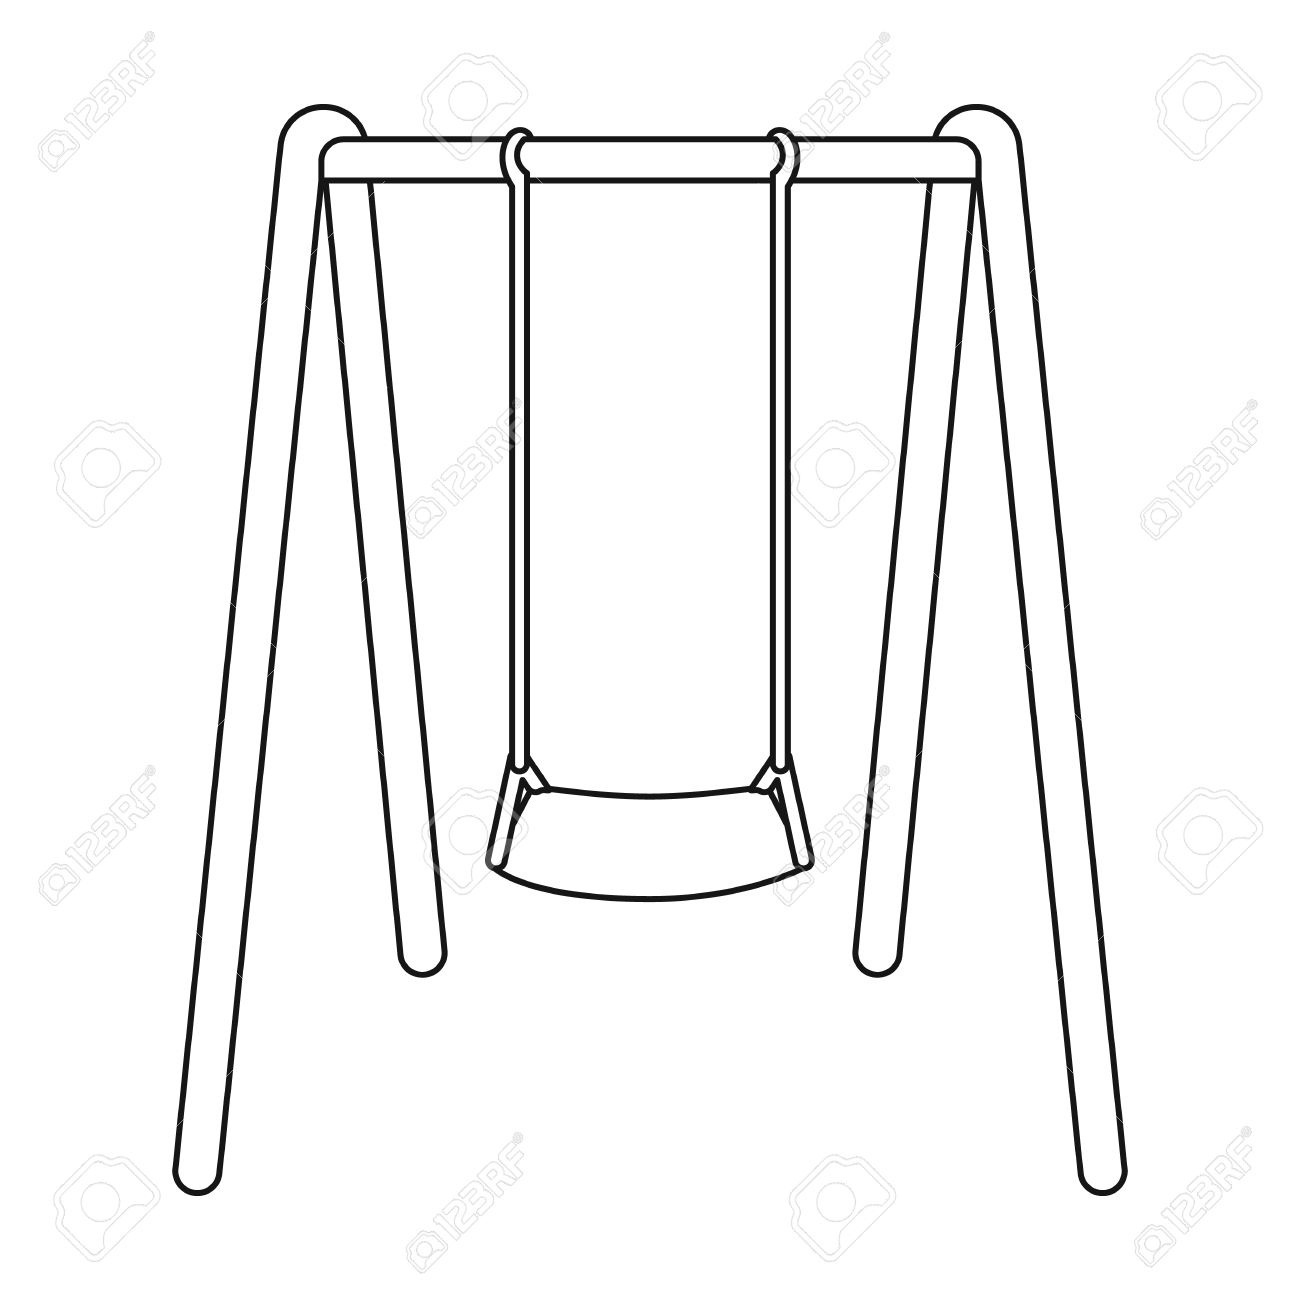 Swing Clipart Black And White Hd.